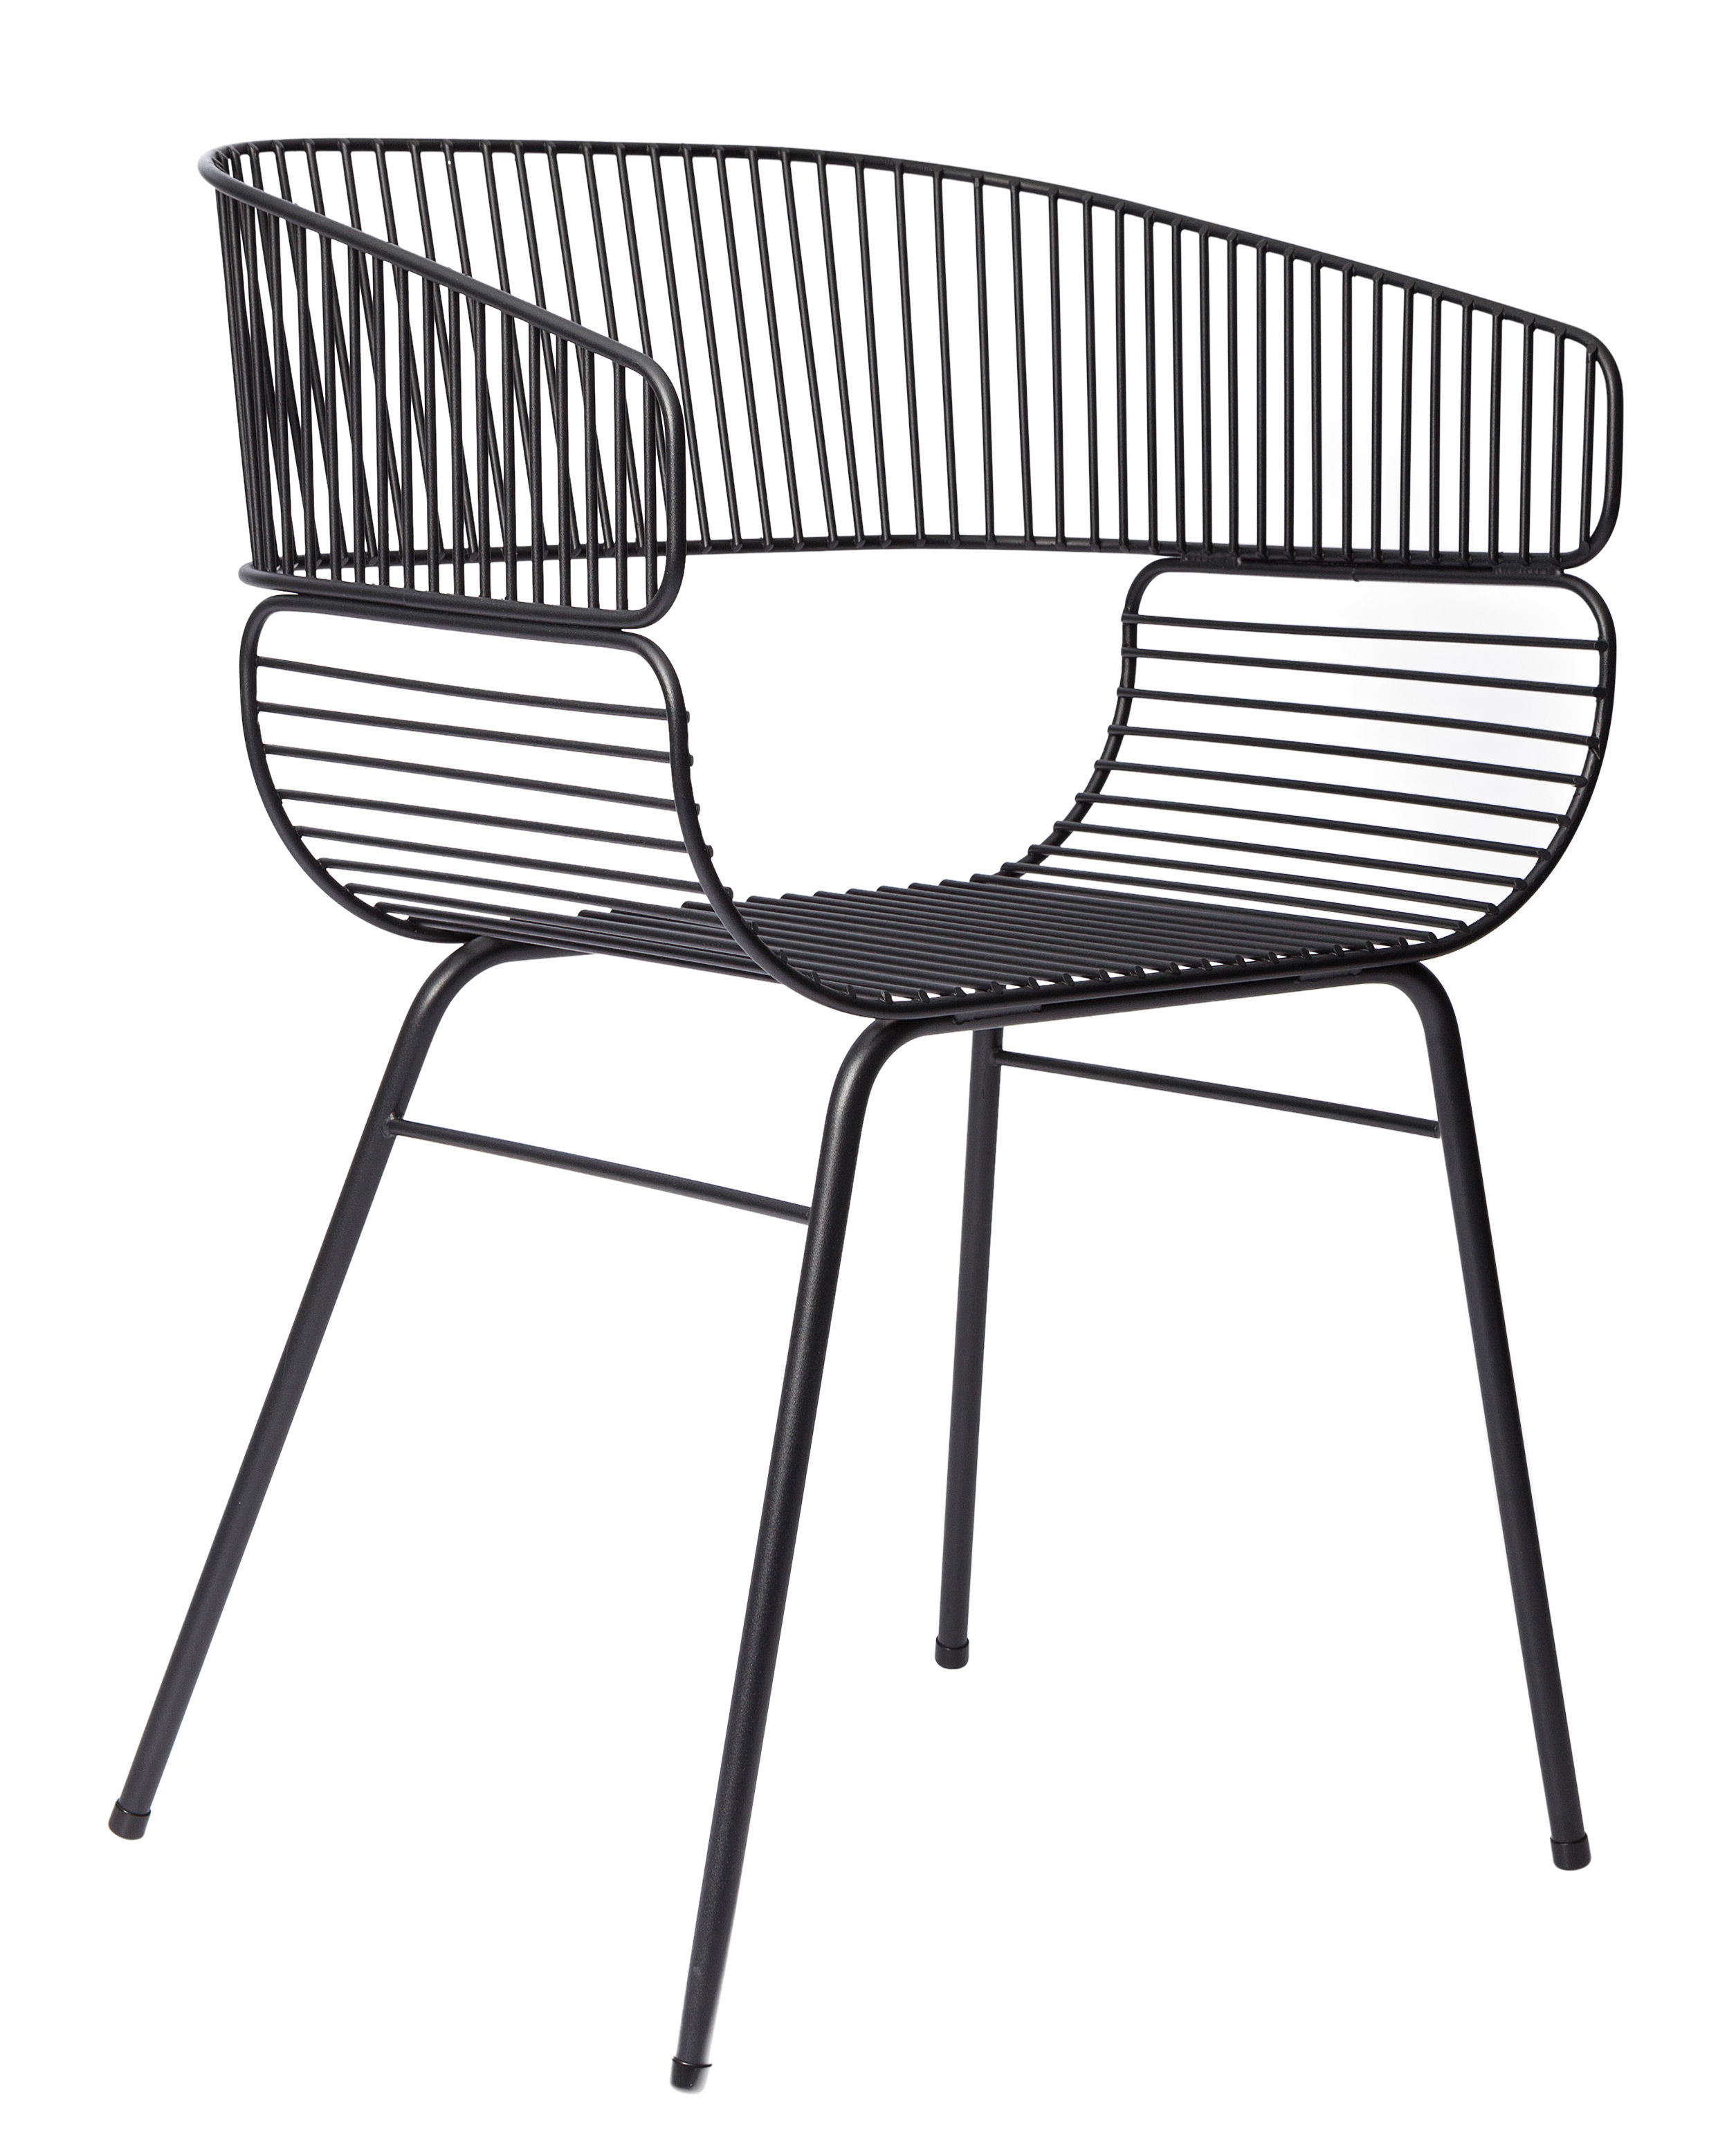 Furniture - Chairs - Trame Armchair - Metal by Petite Friture - black - Powder coated steel